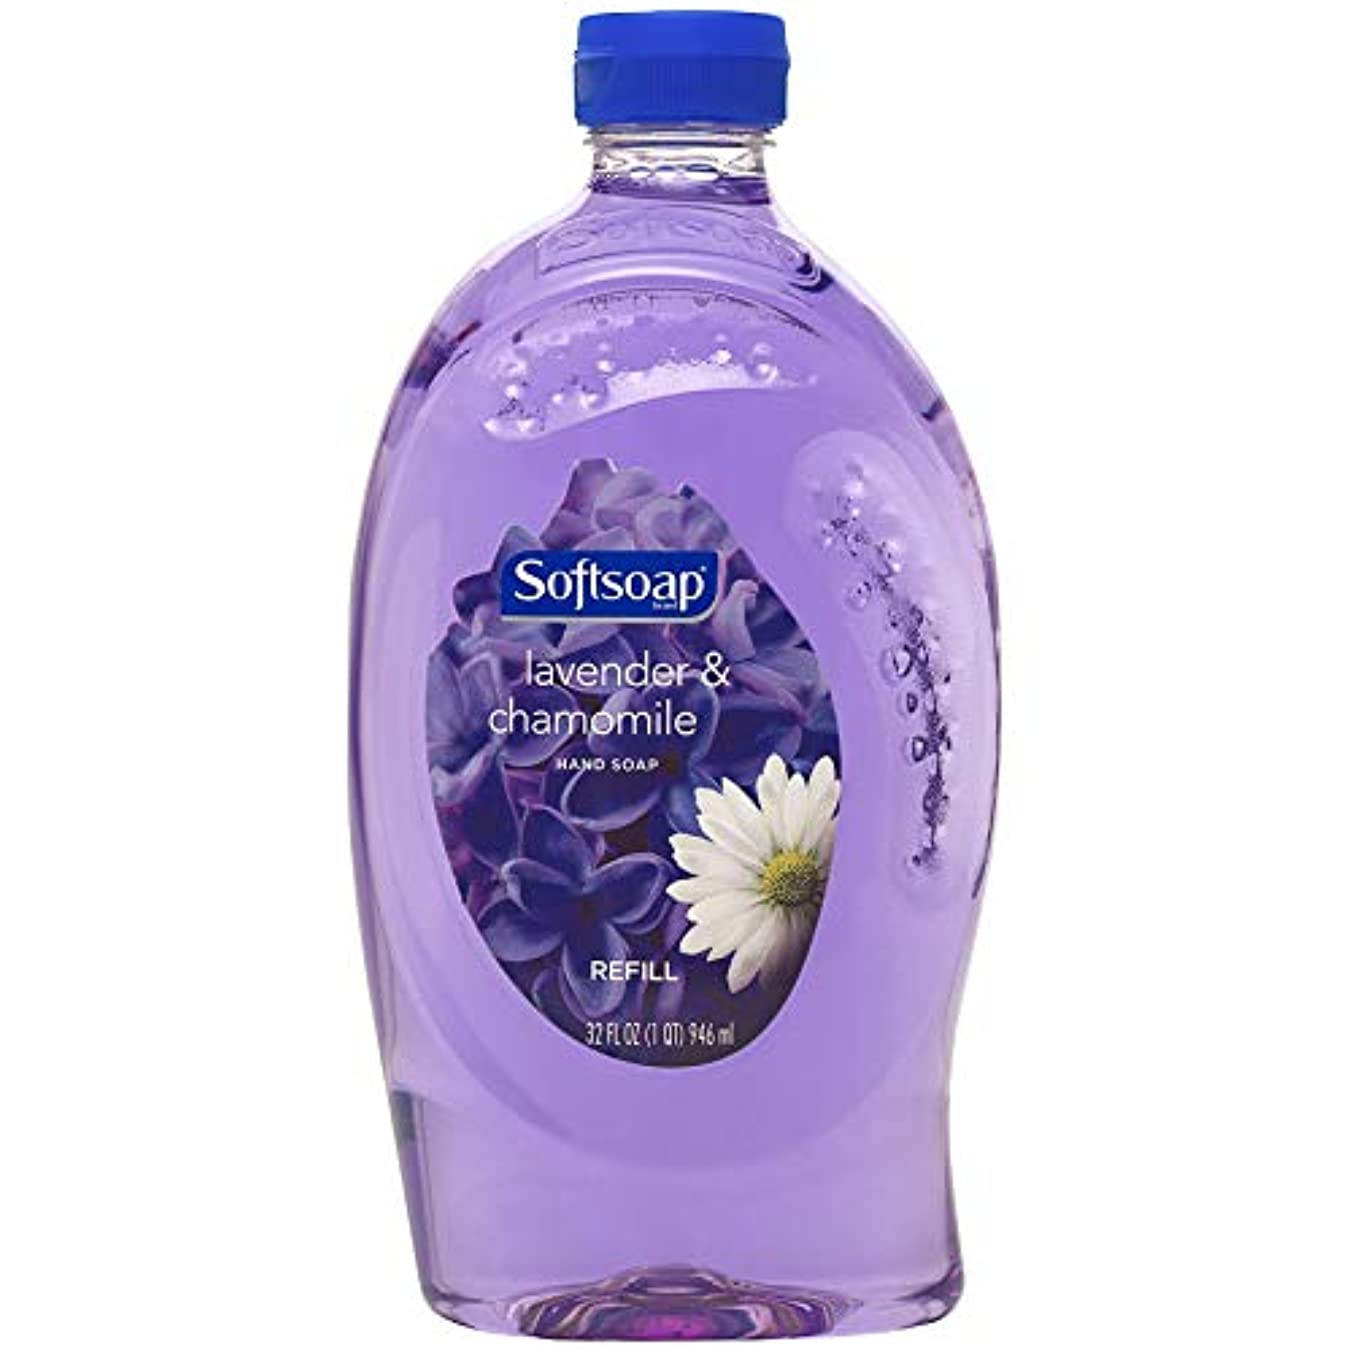 Softsoap Lavender and Chamomile - Liquid Hand Soap Refill, 32 Ounce by Softsoap